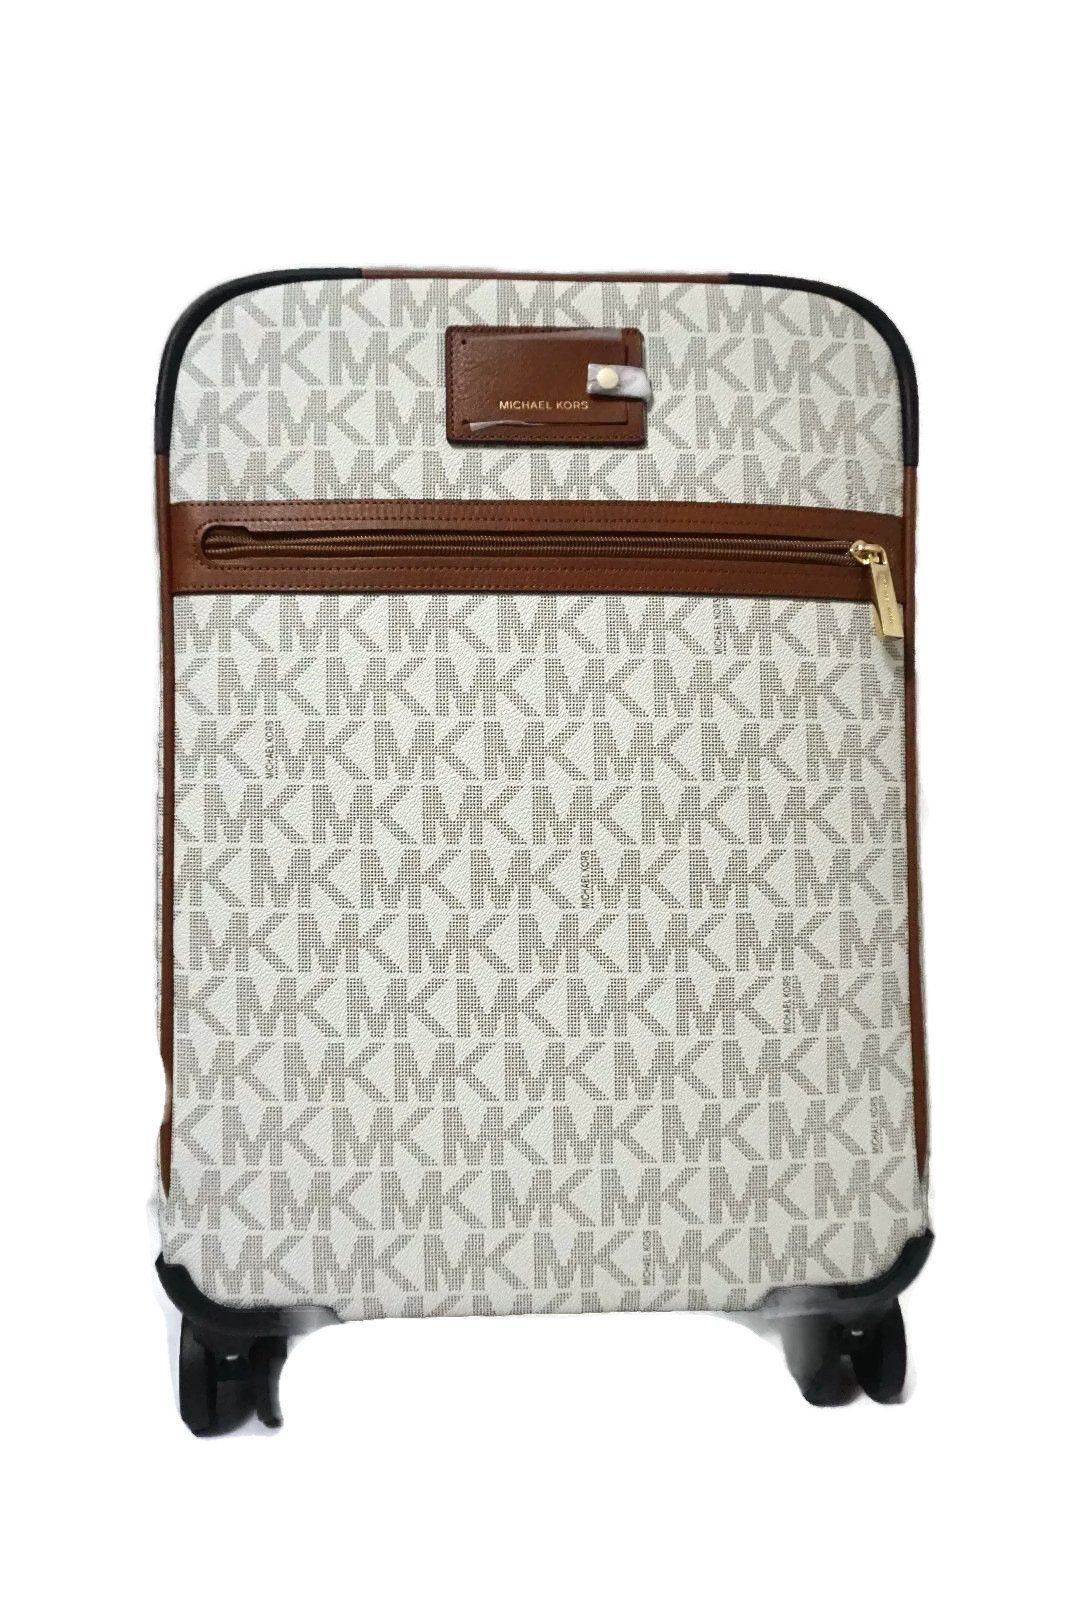 Michael Kors Signature Travel Trolley Rolling Carry On Suitcase (Vanilla) by Michael Kors